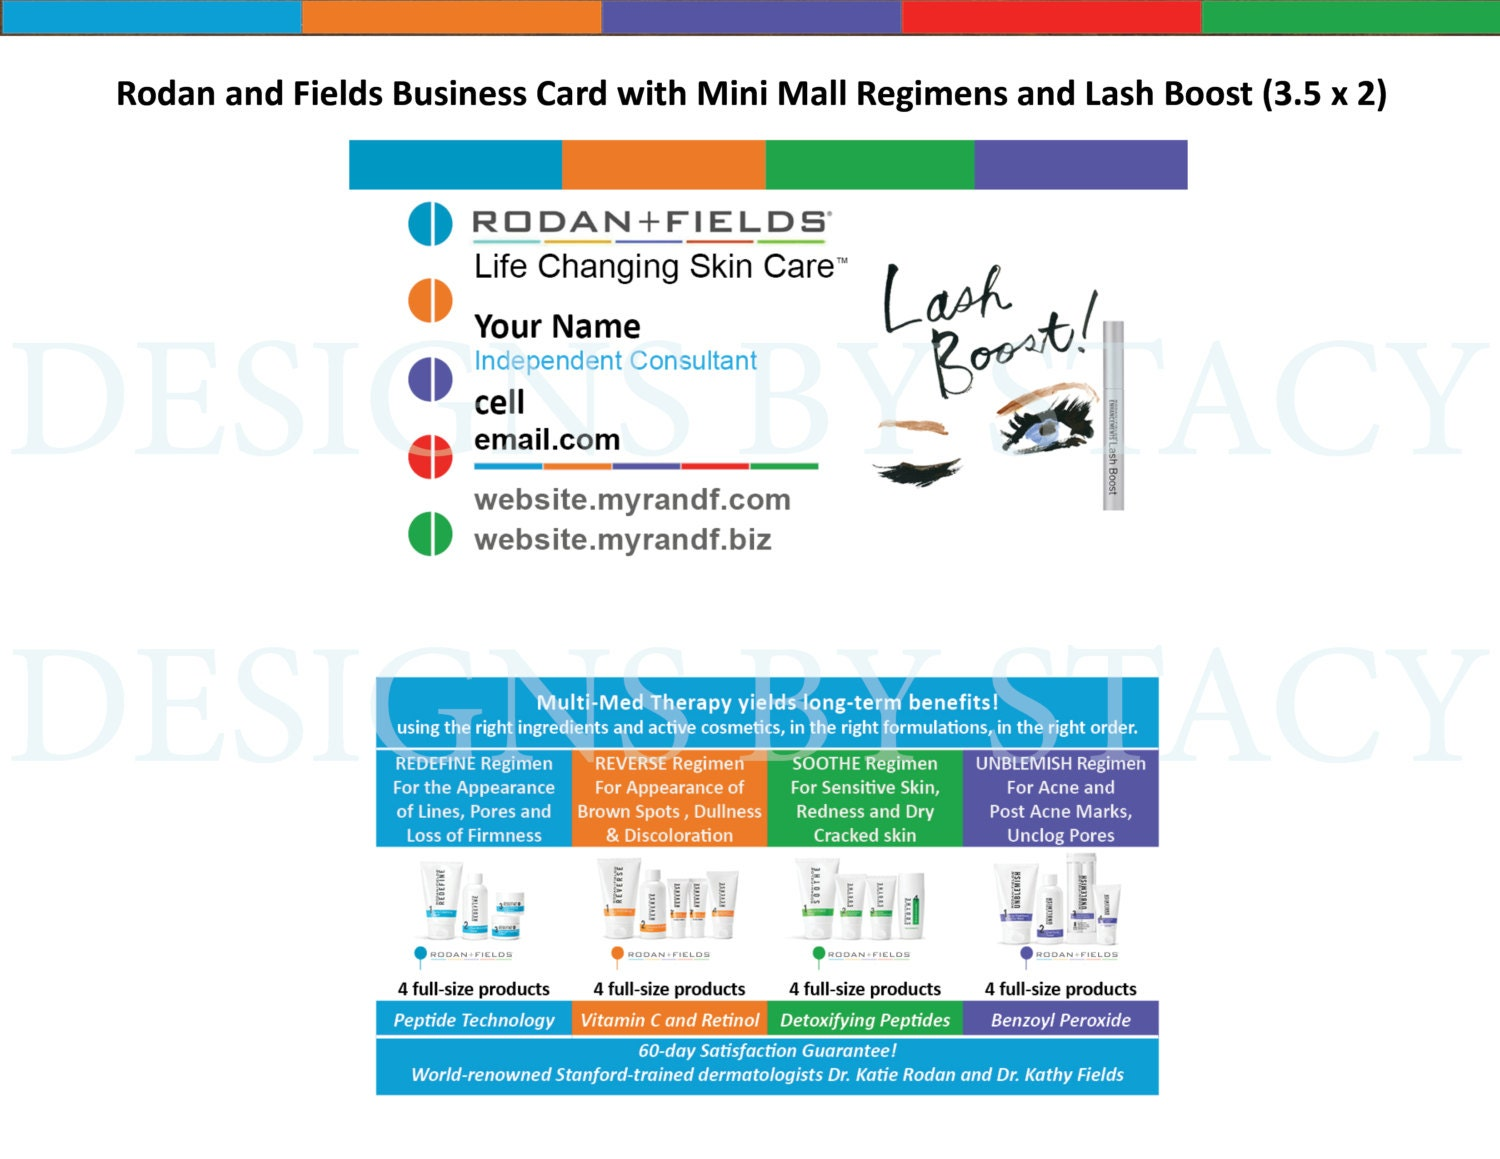 Rodan and Fields Business Card with Mini Mall Regimens and